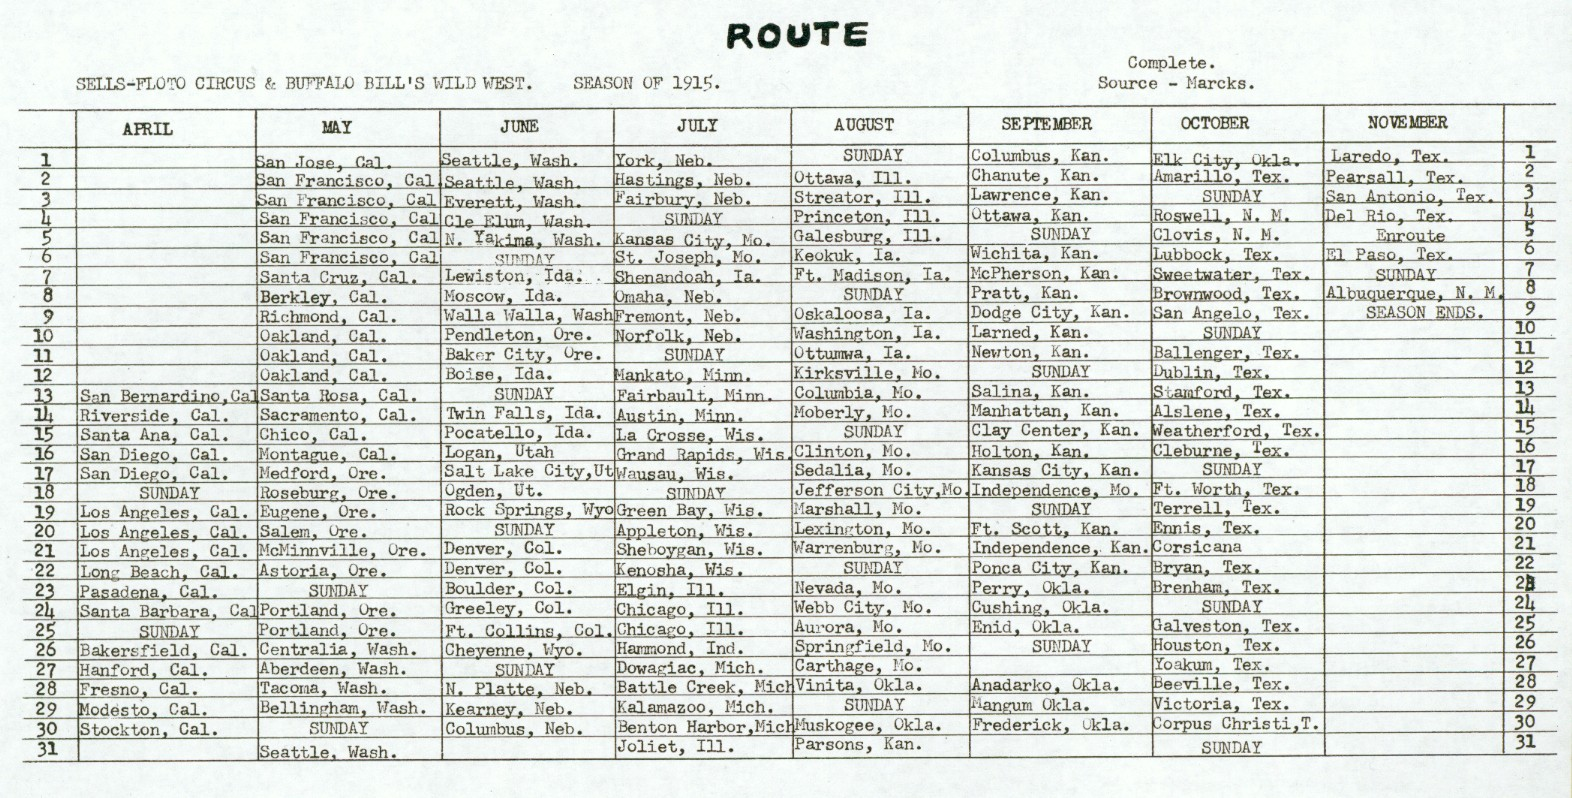 1915 Season Route, Sells-Floto Circus & Buffalo Bill Wild West Show